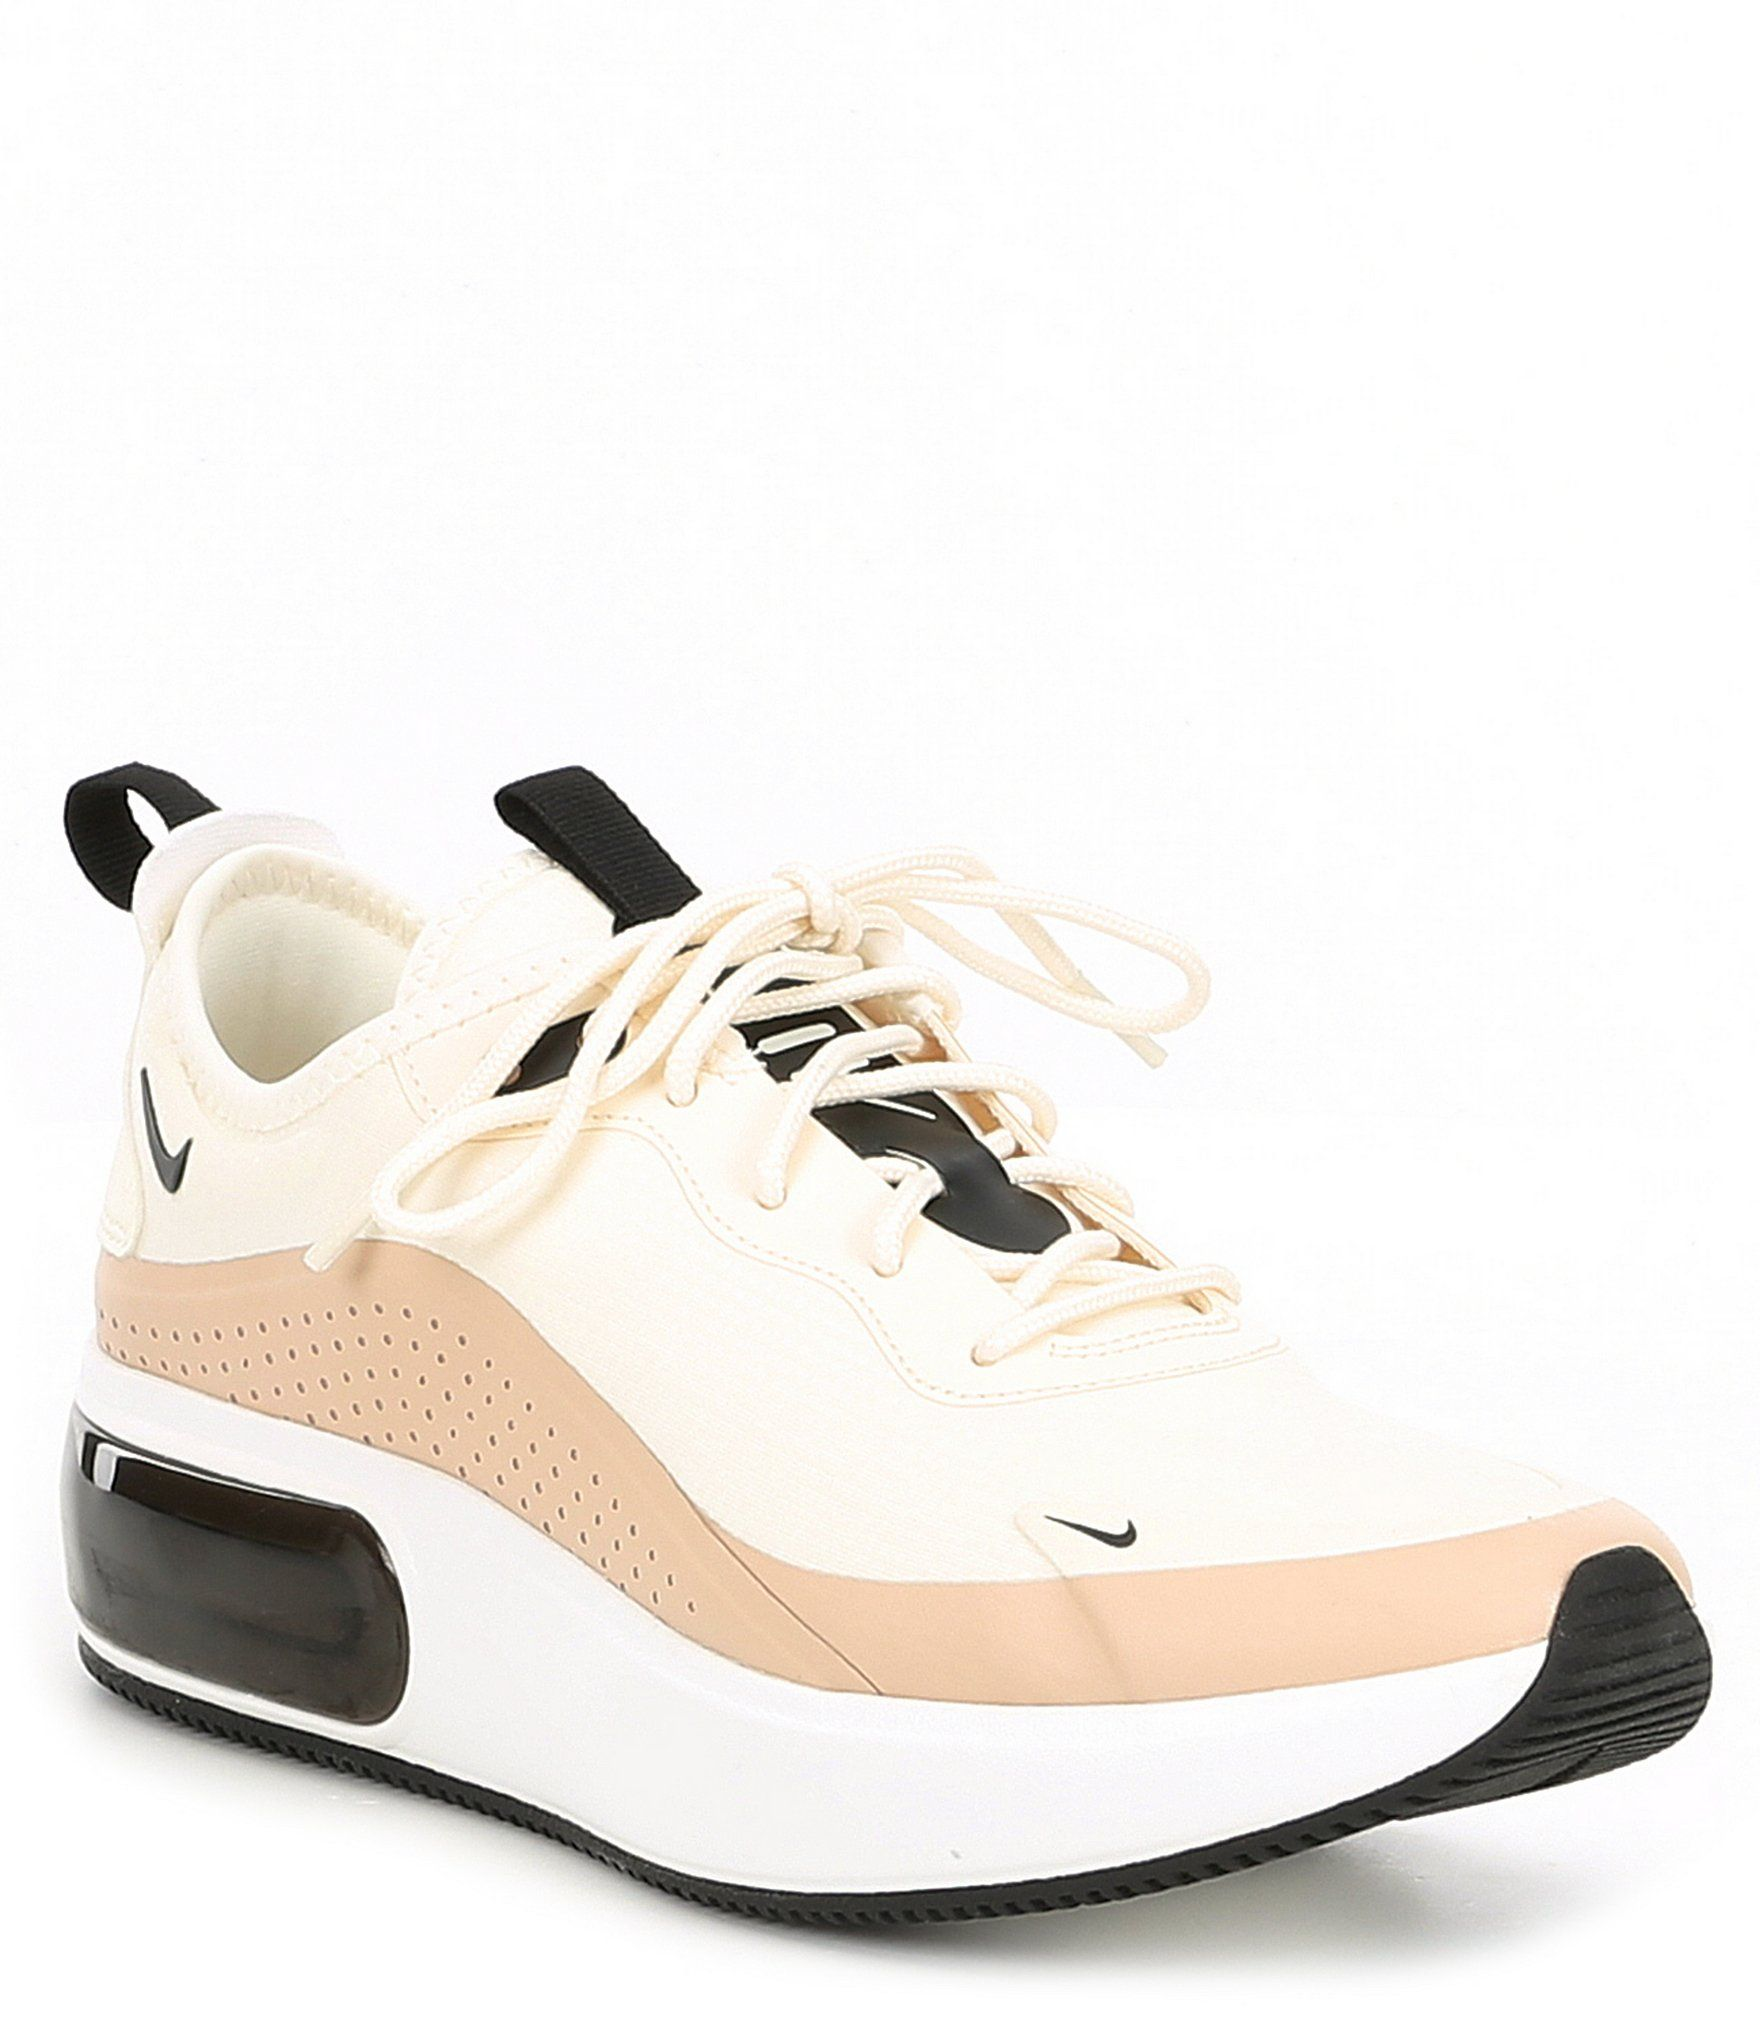 Nike Women S Air Max Dia Lifestyle Shoes Dillard S In 2020 Womens Shoes Sneakers Sneakers Fashion Air Max Women